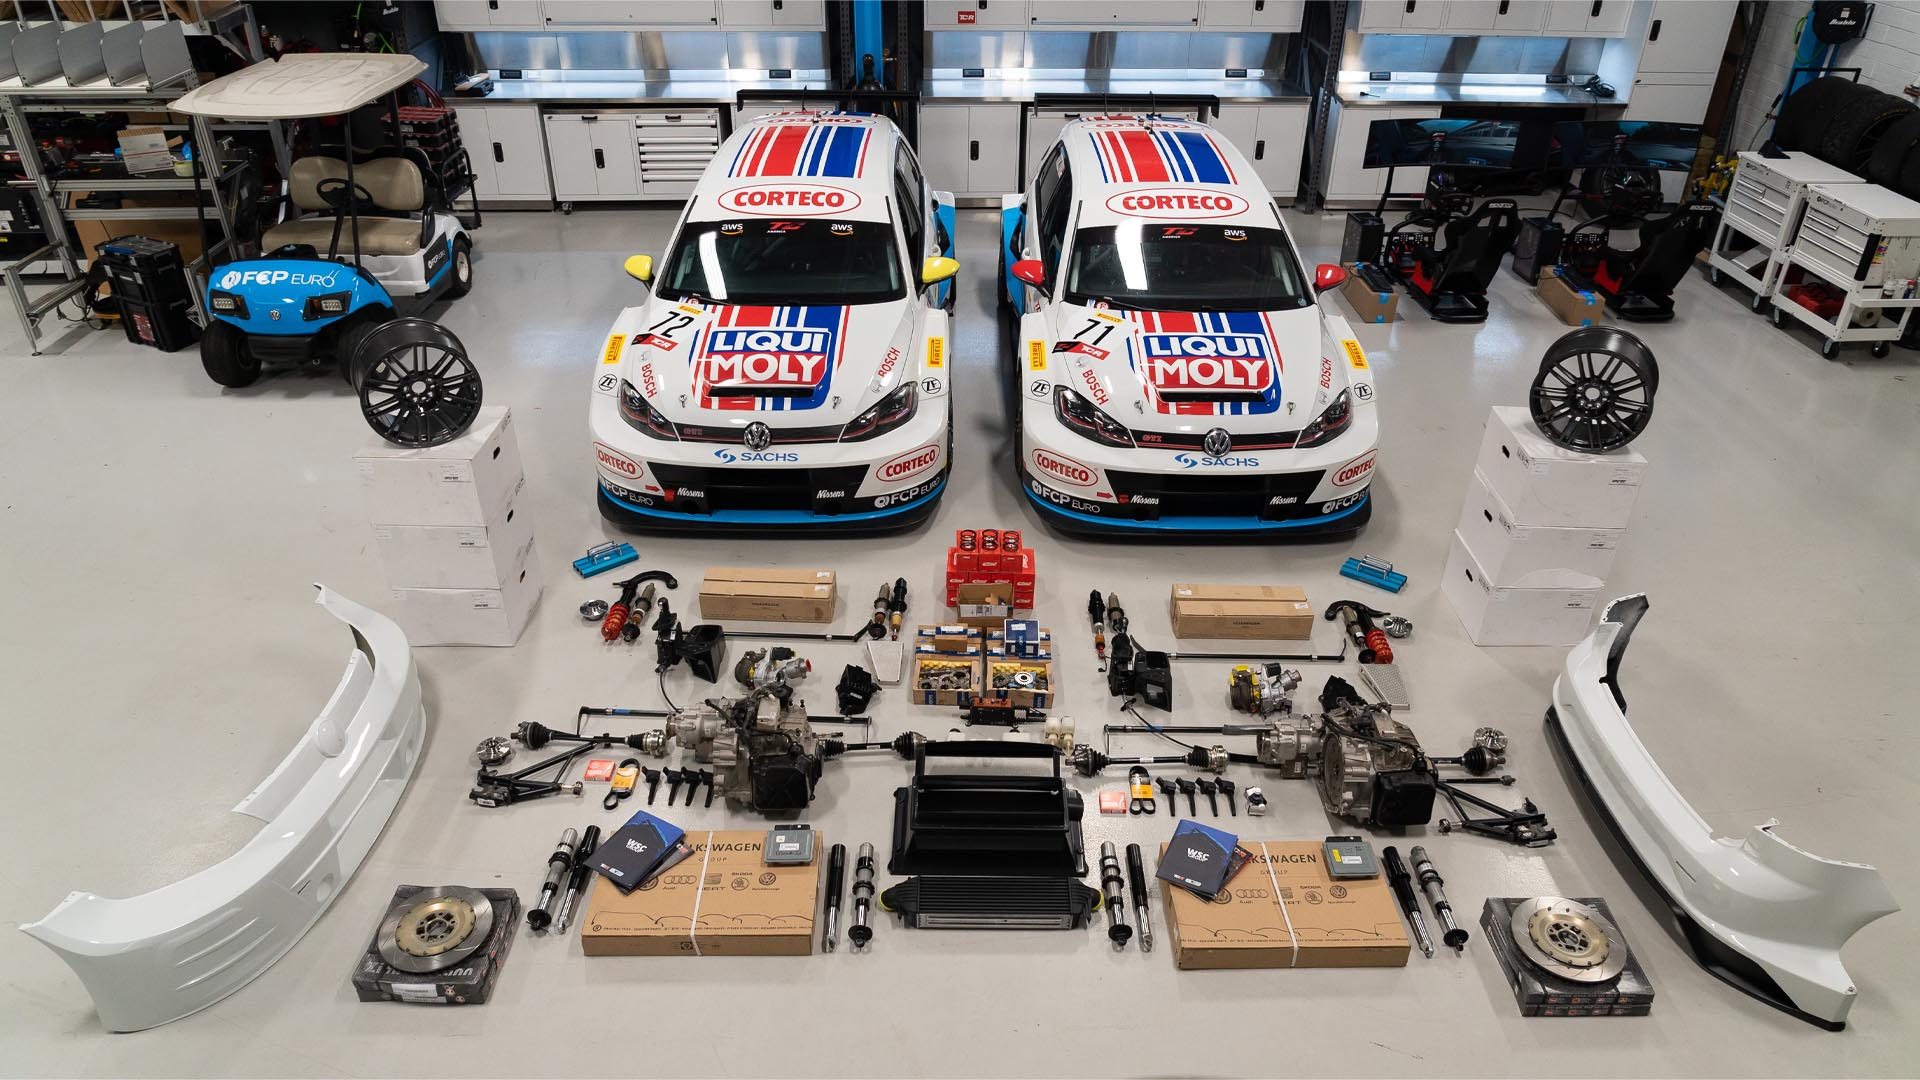 For Sale: Two Championship-Winning VW GTI TCRs (11/20/2020 Update)